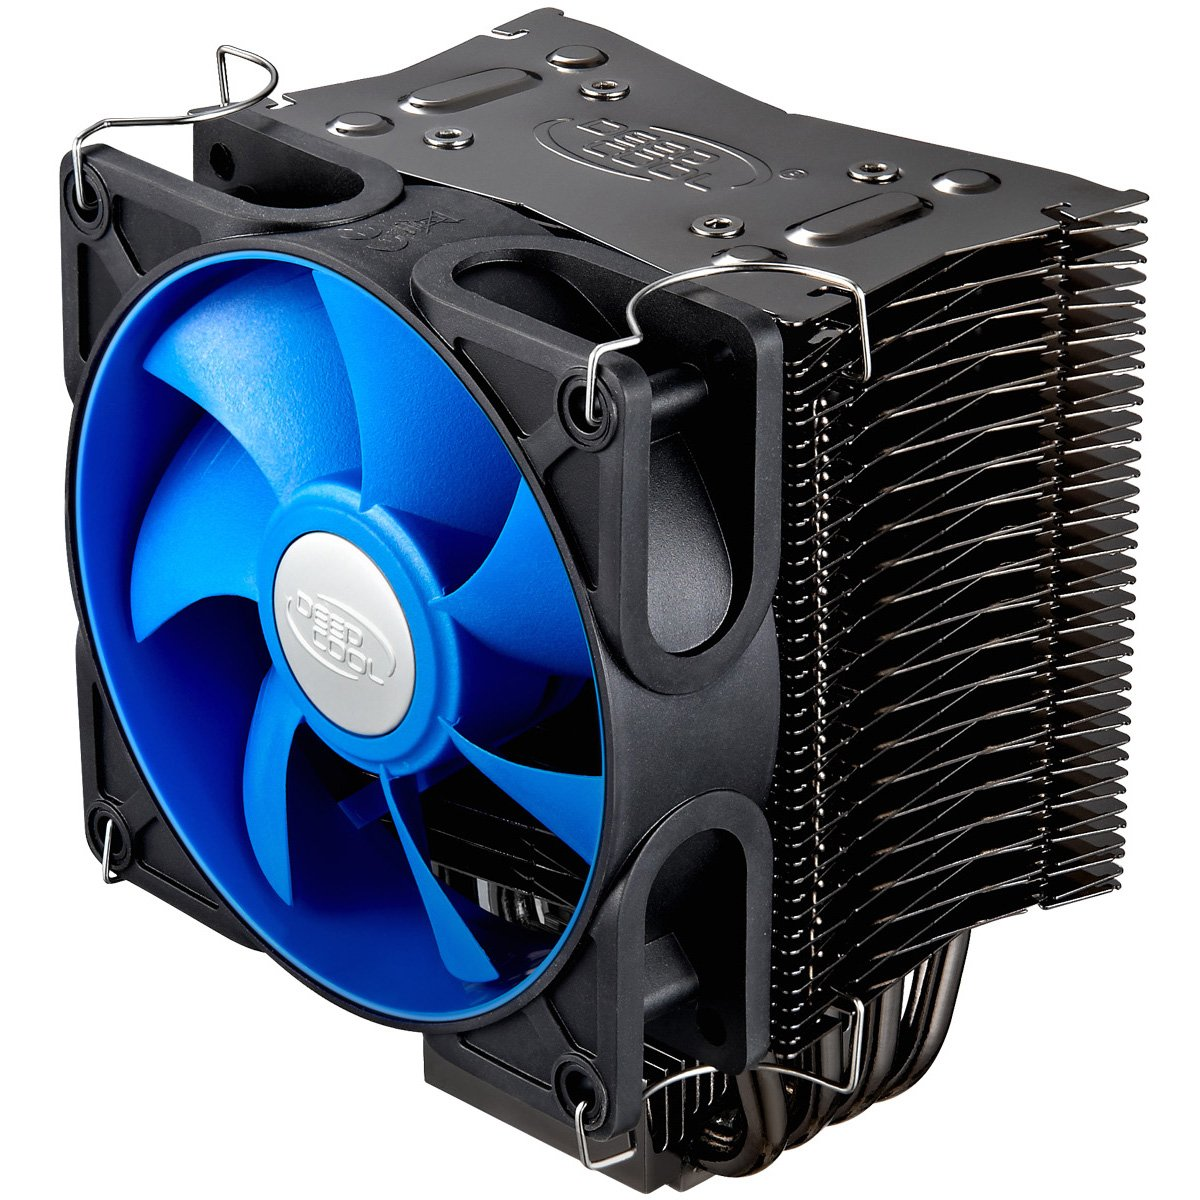 Possible to overclock my Dell? | Tom's Hardware Forum